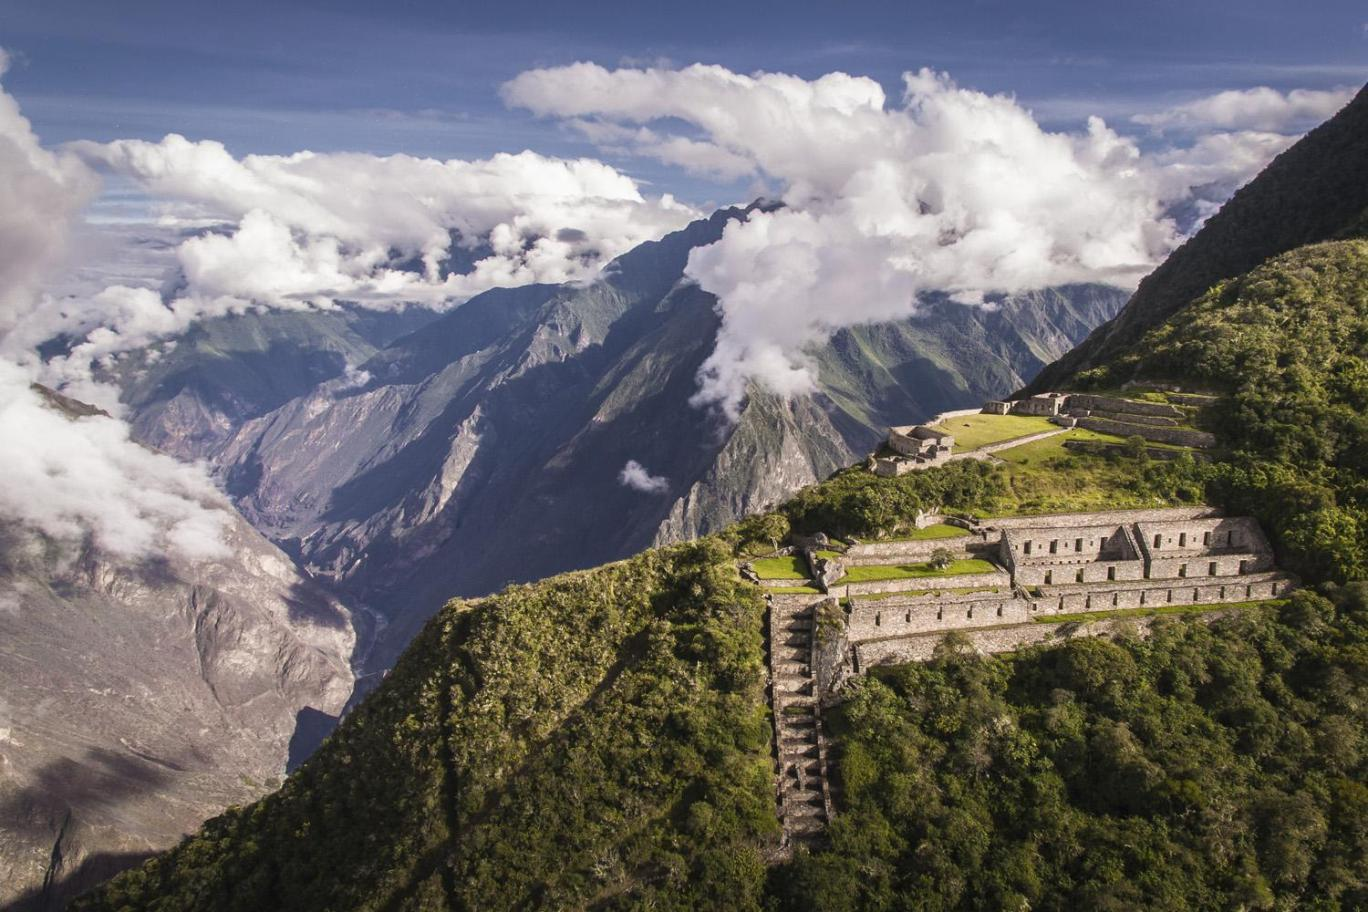 Choquequirao treking to Machu Picchu